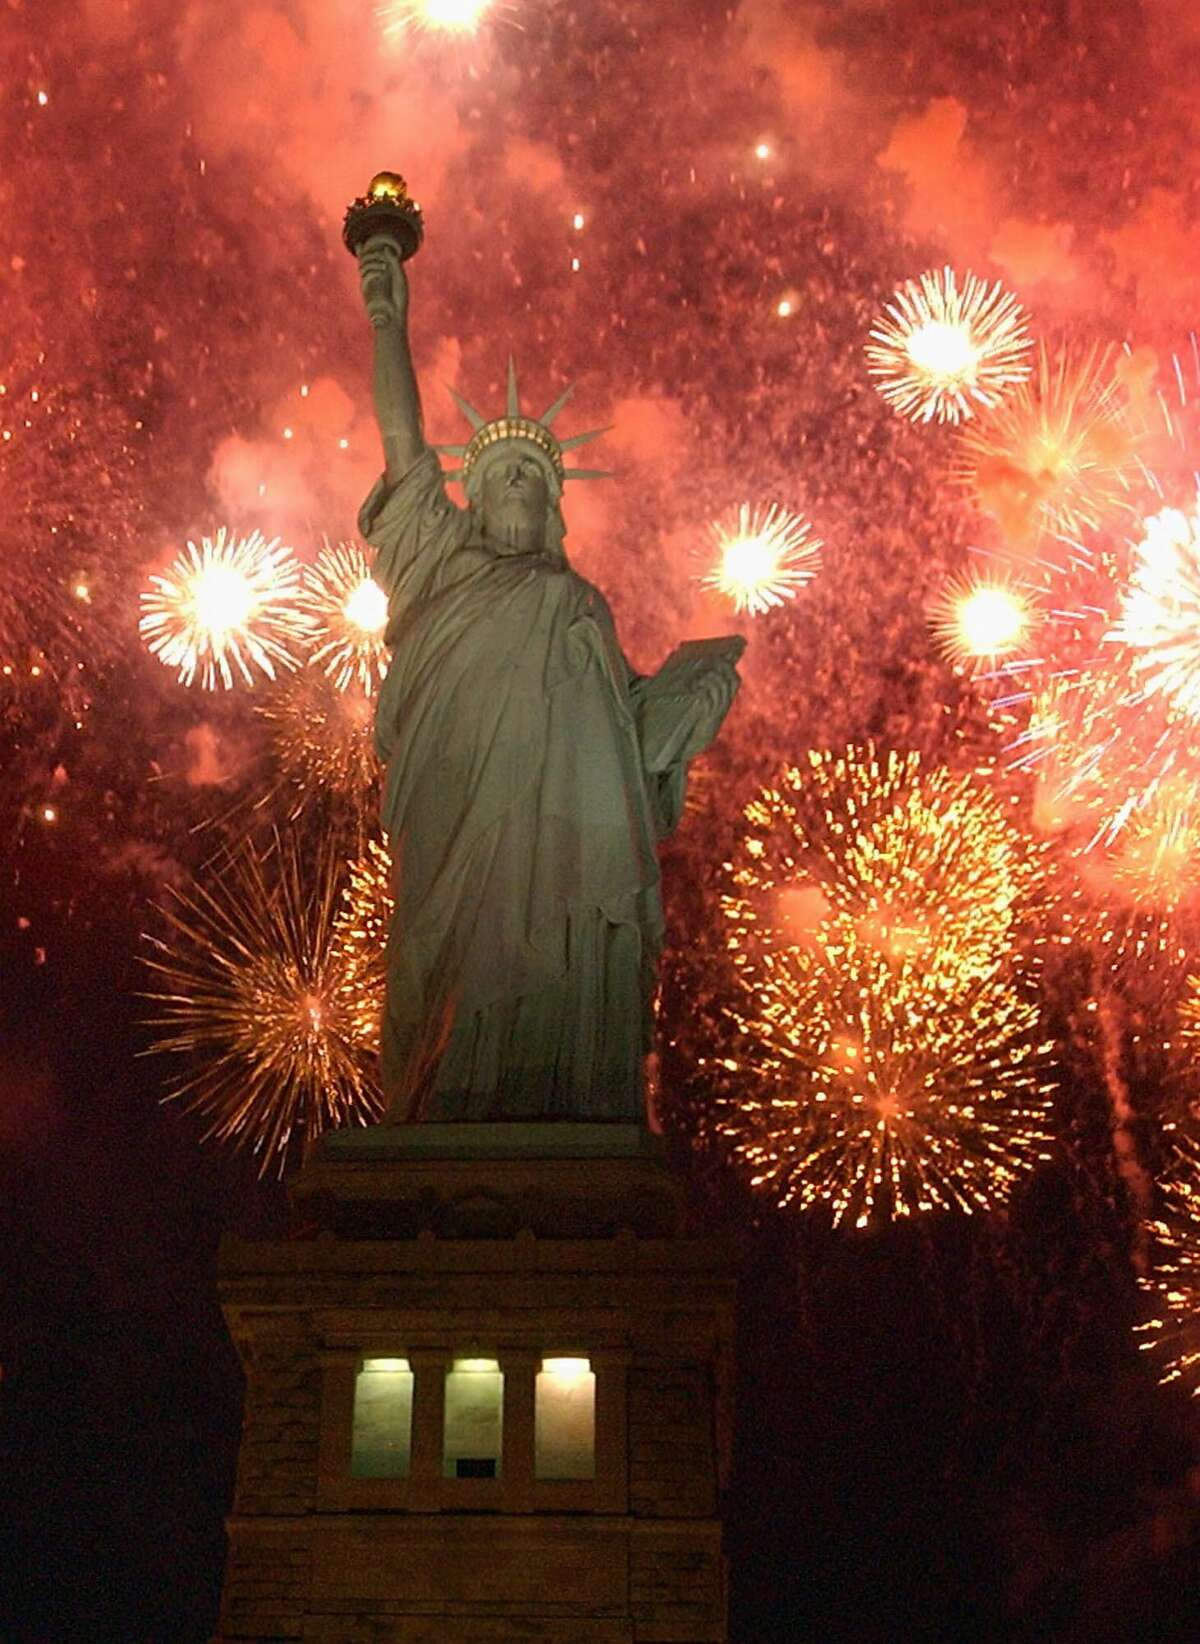 1. New York 'Fourth of July celebrations' rank: 5 'Affordability rank: 89 'Attractions and activities' rank: 1 'Safety and sensibility' rank: 2 'Weather' rank: 26